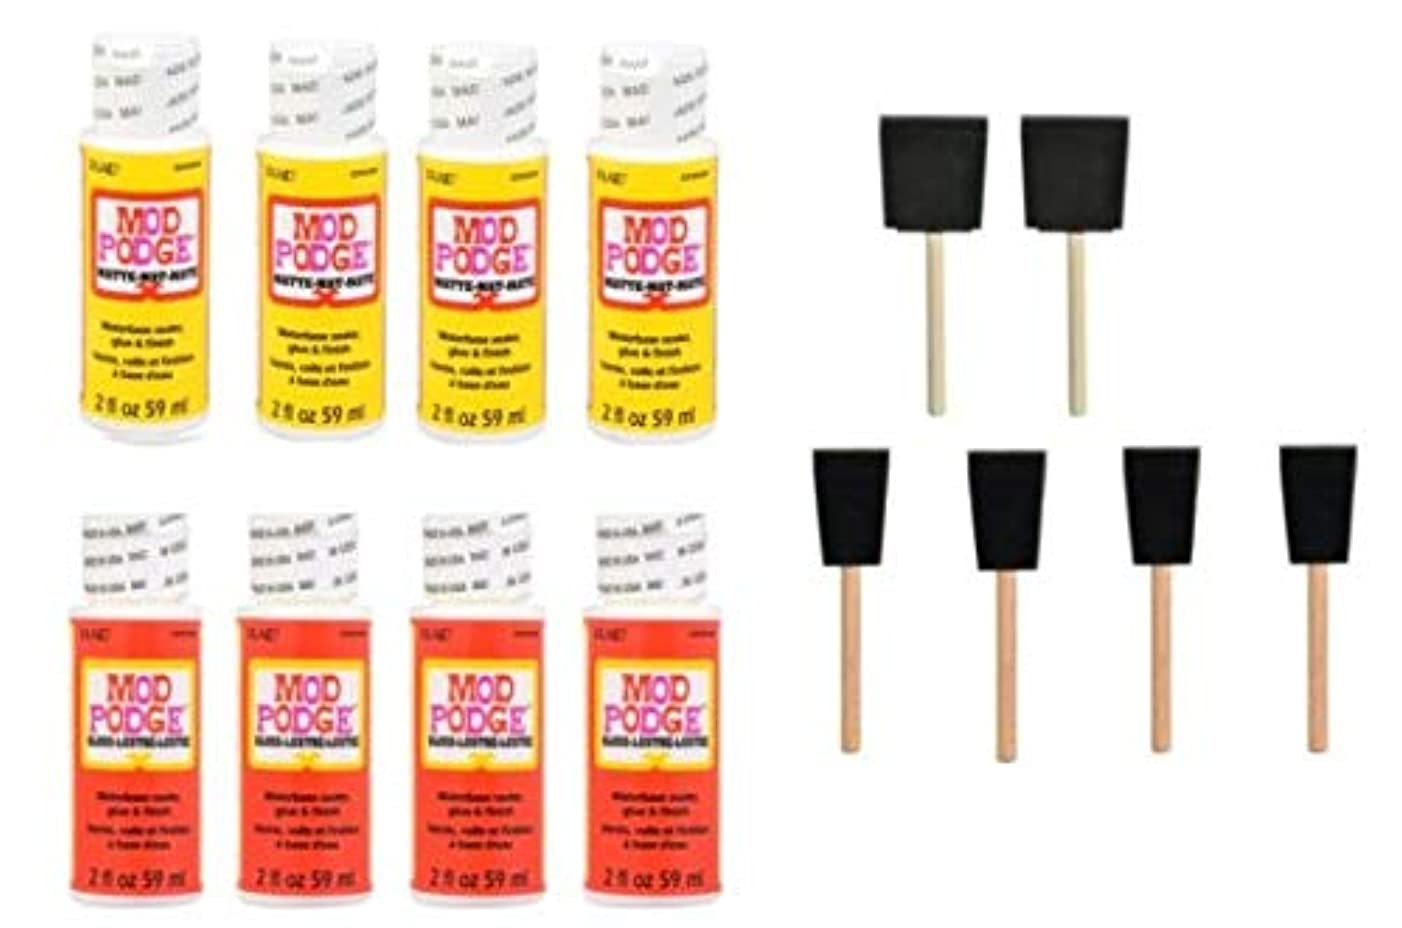 Mod Podge Craft Decoupage Glue, Waterbase Sealer, Bond and Finish with 6 Foam Craft Paint Sponge Applicator Brushes – Gloss and Matte Medium Transfer Supplies Project Saver - Variety Pack Bundle Start